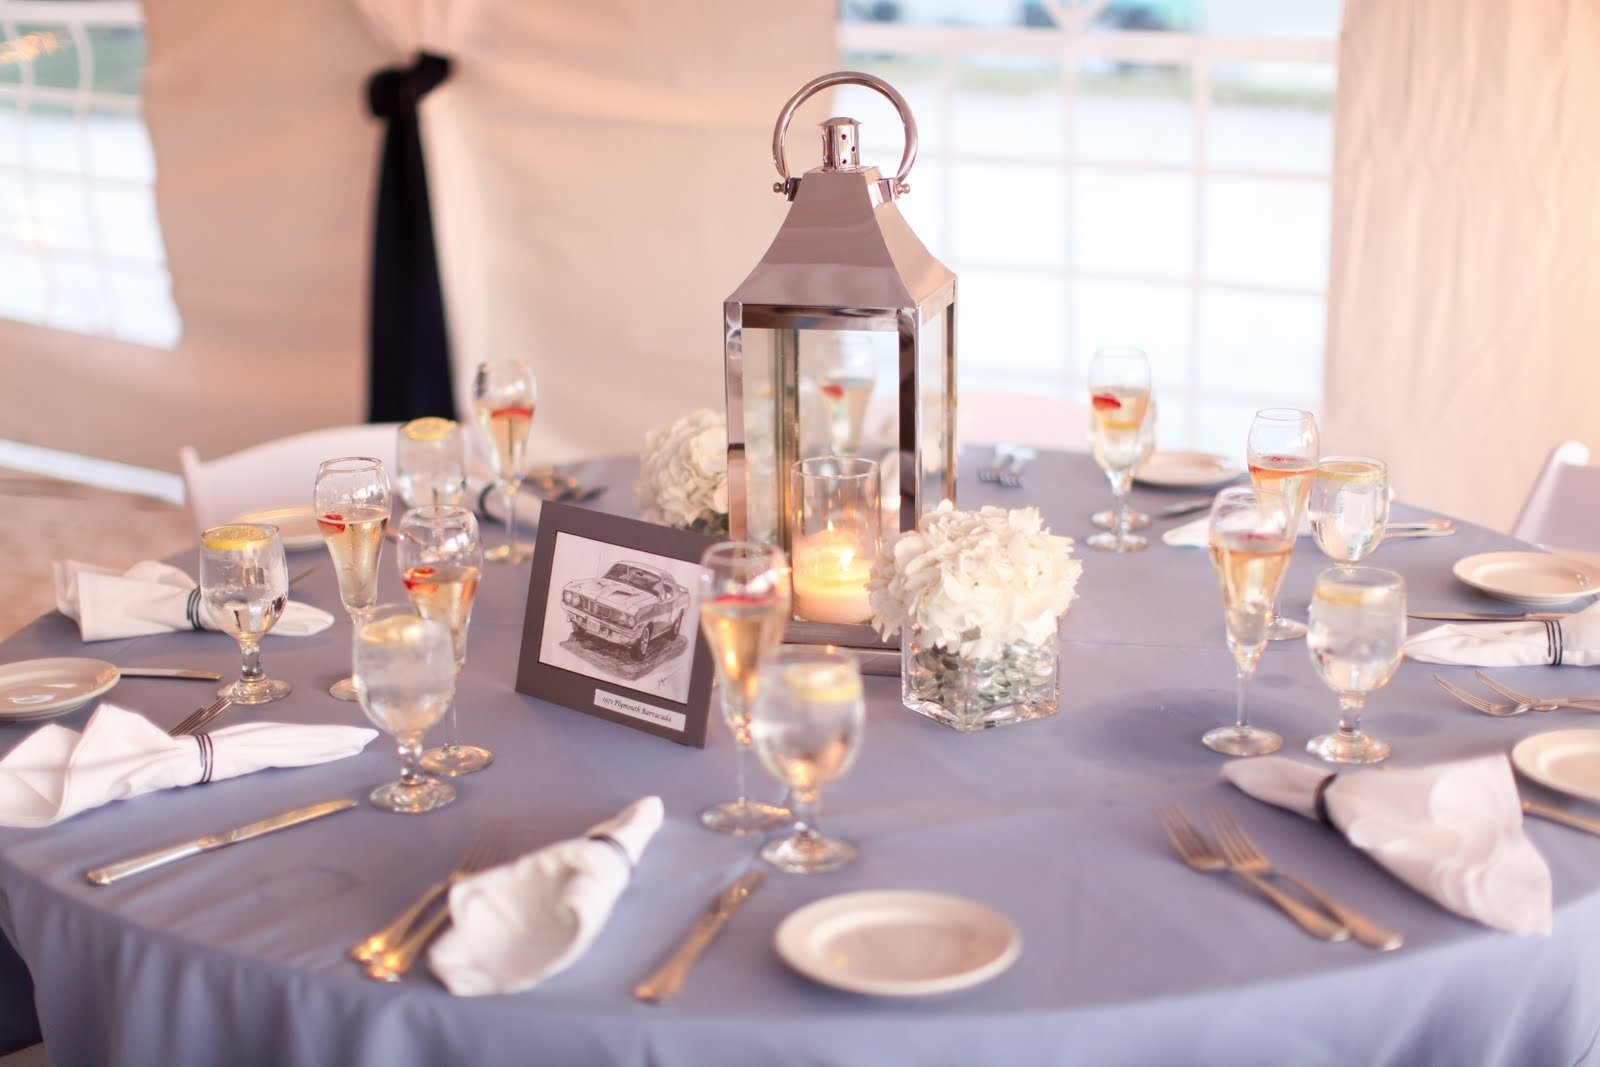 10 Fashionable Wedding Centerpiece Ideas Without Flowers nice lantern with glass candle inside for round wedding table 2020